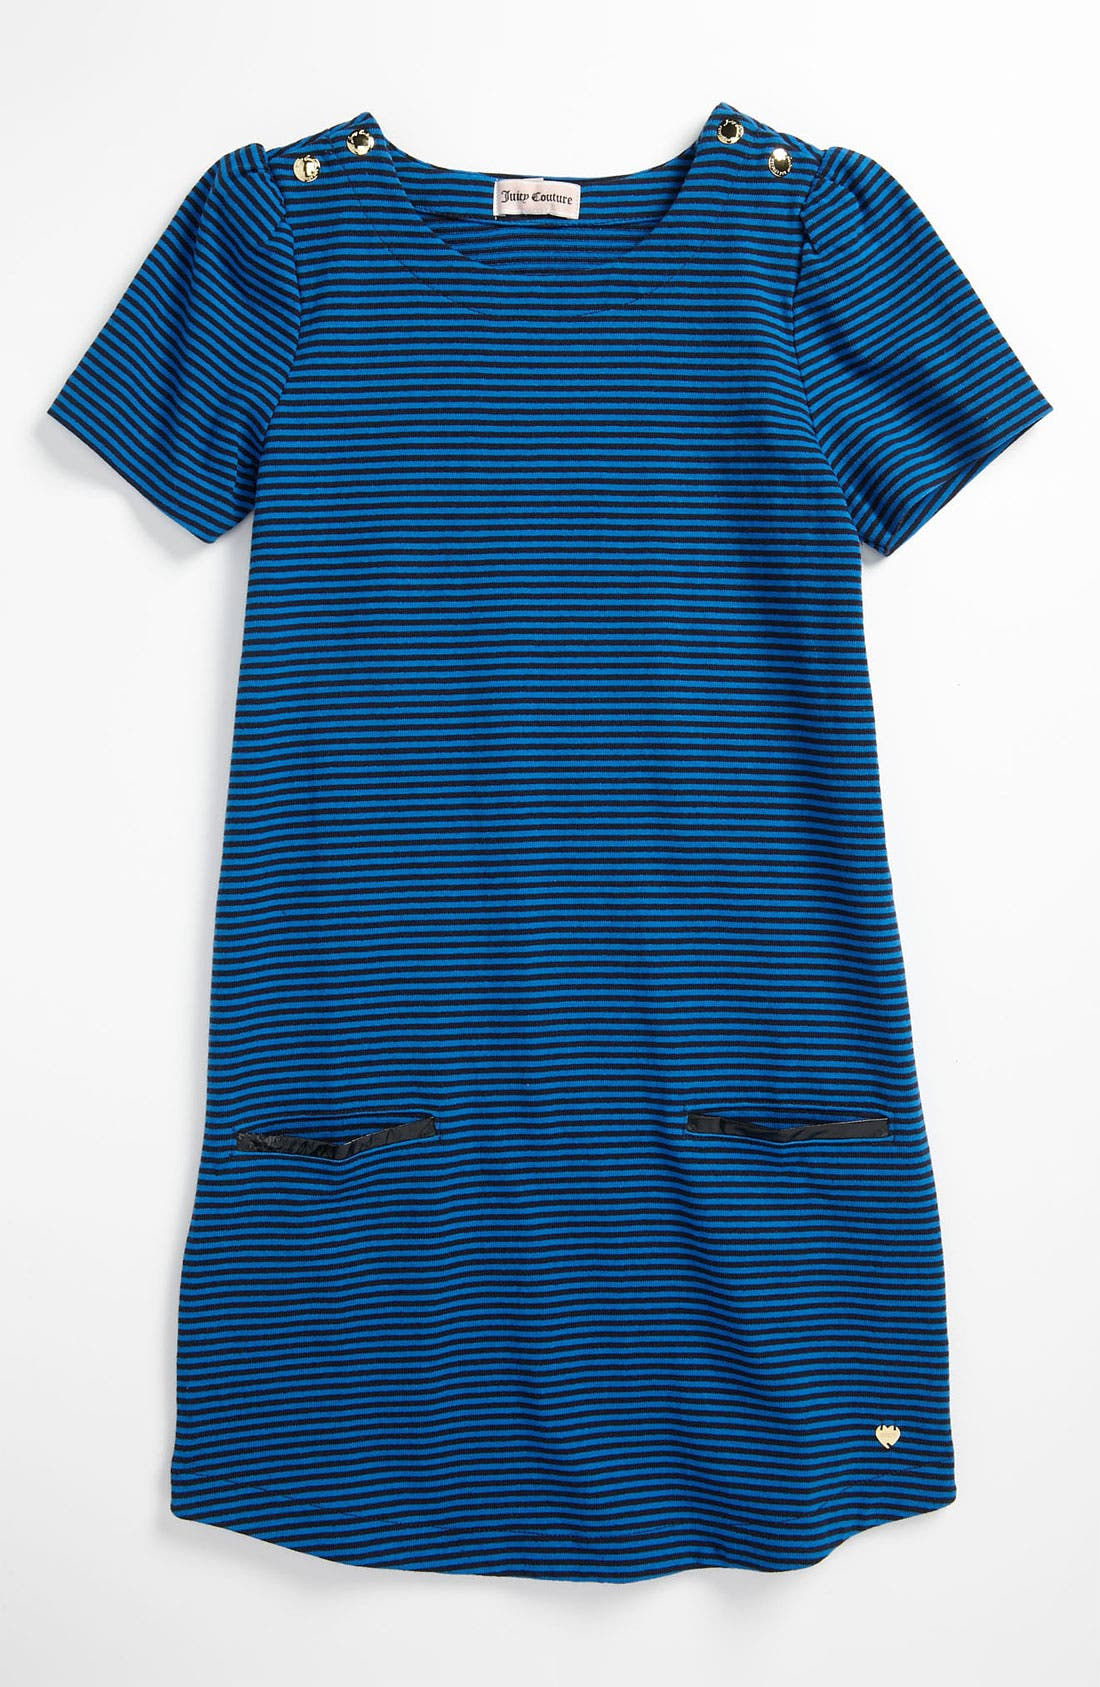 Alternate Image 1 Selected - Juicy Couture Stripe Jersey Dress (Little Girls & Big Girls)